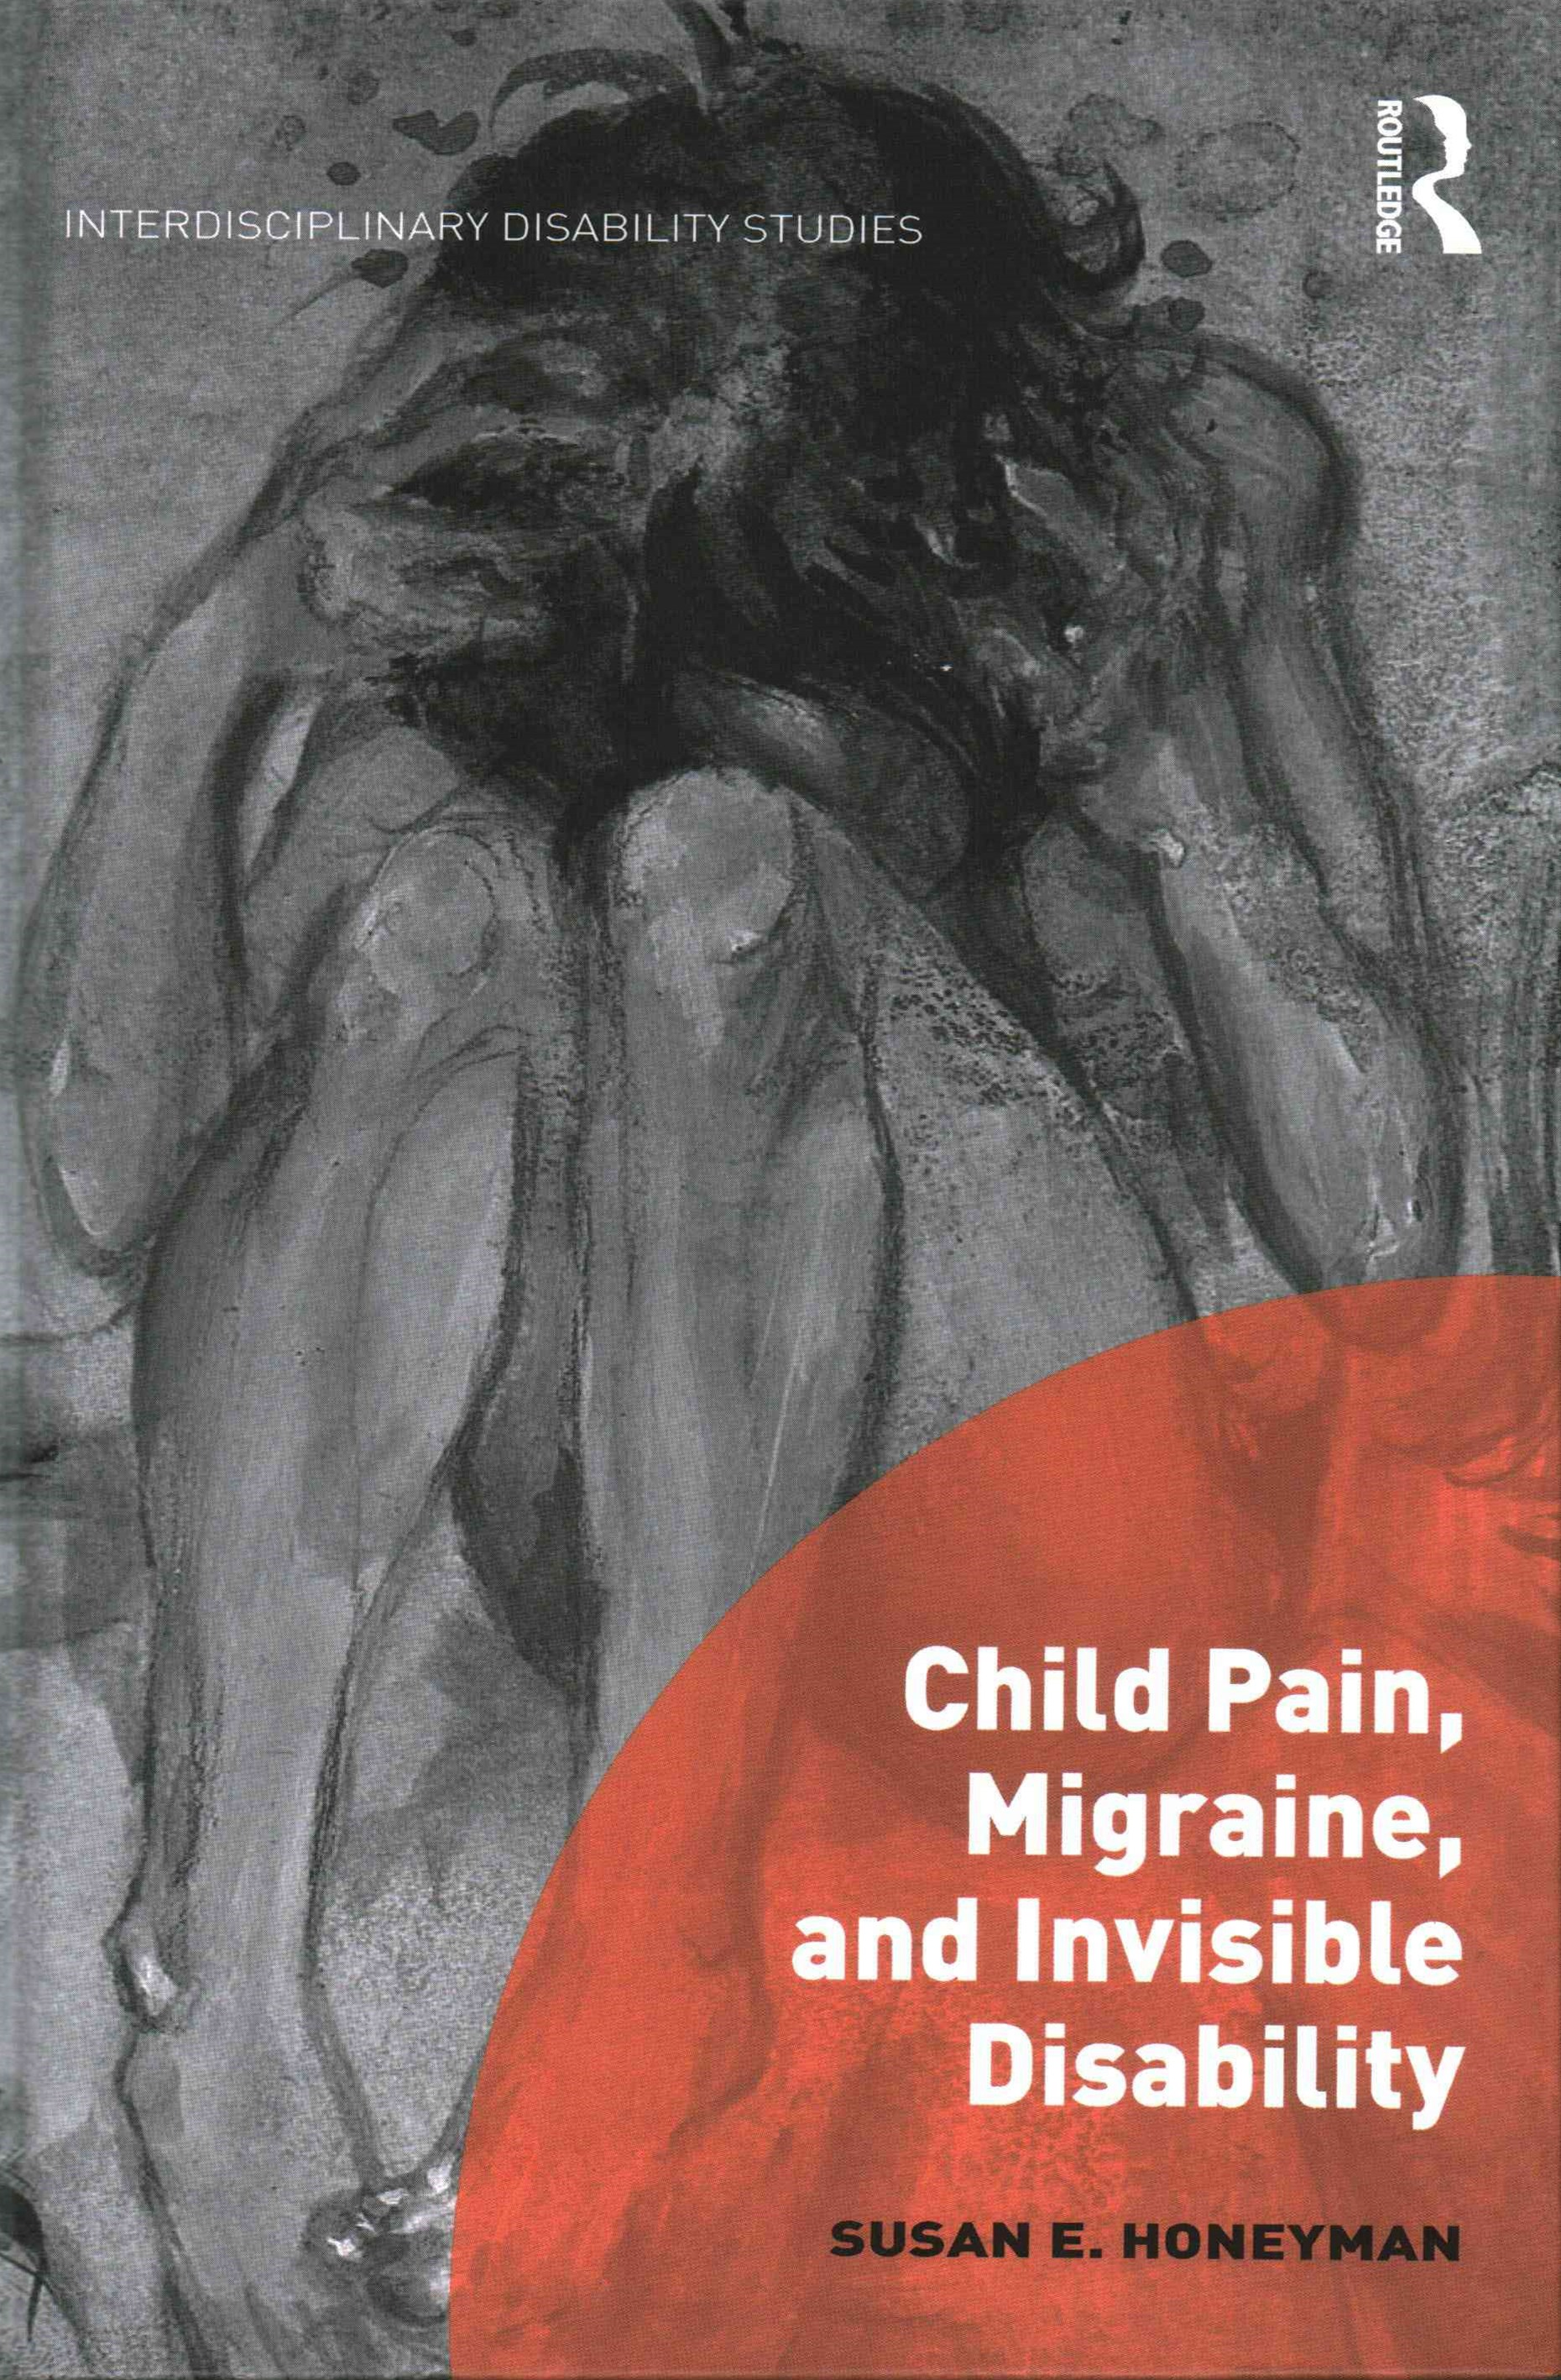 Child Pain, Migraine and Invisible Disability